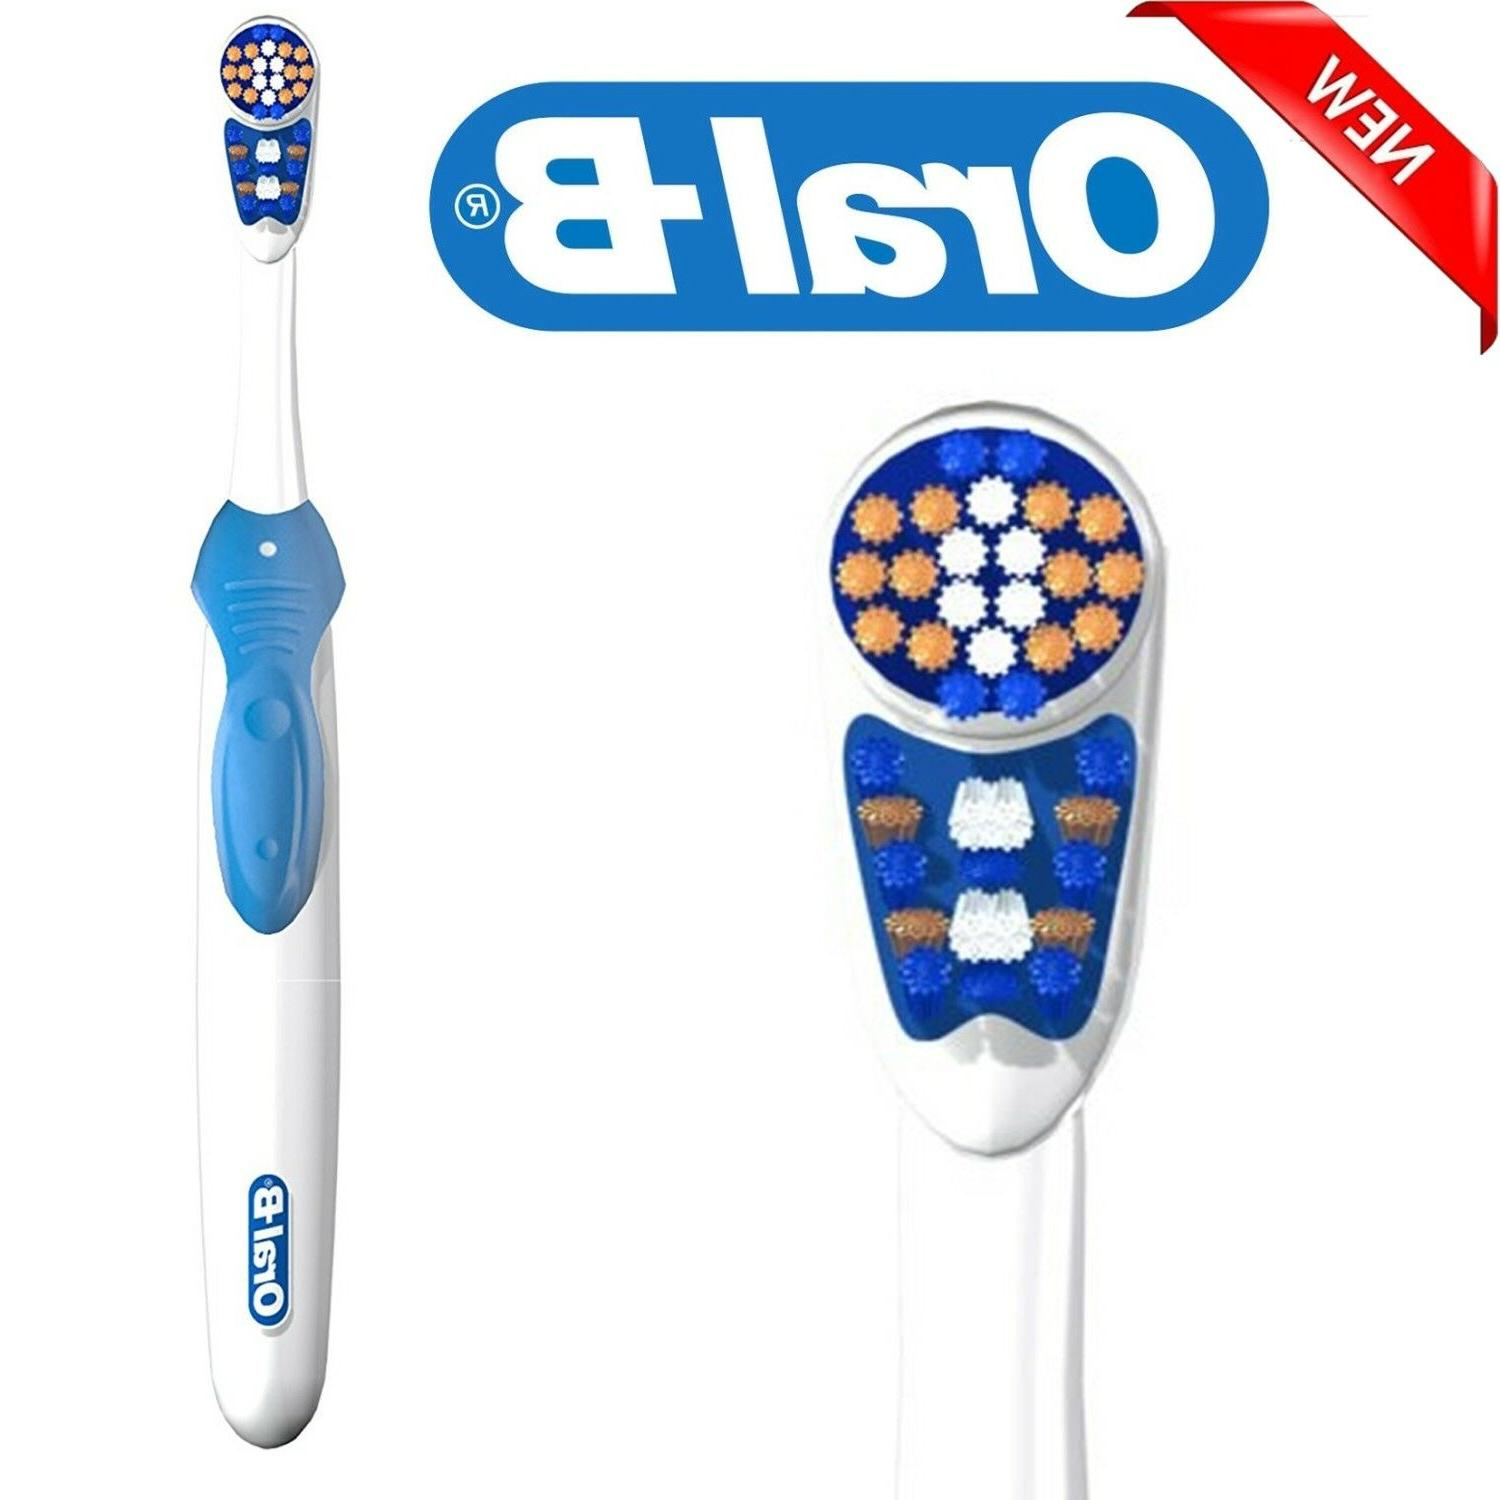 Oral-B 3D Electric Toothbrush Battery-Powered Clean Teeth